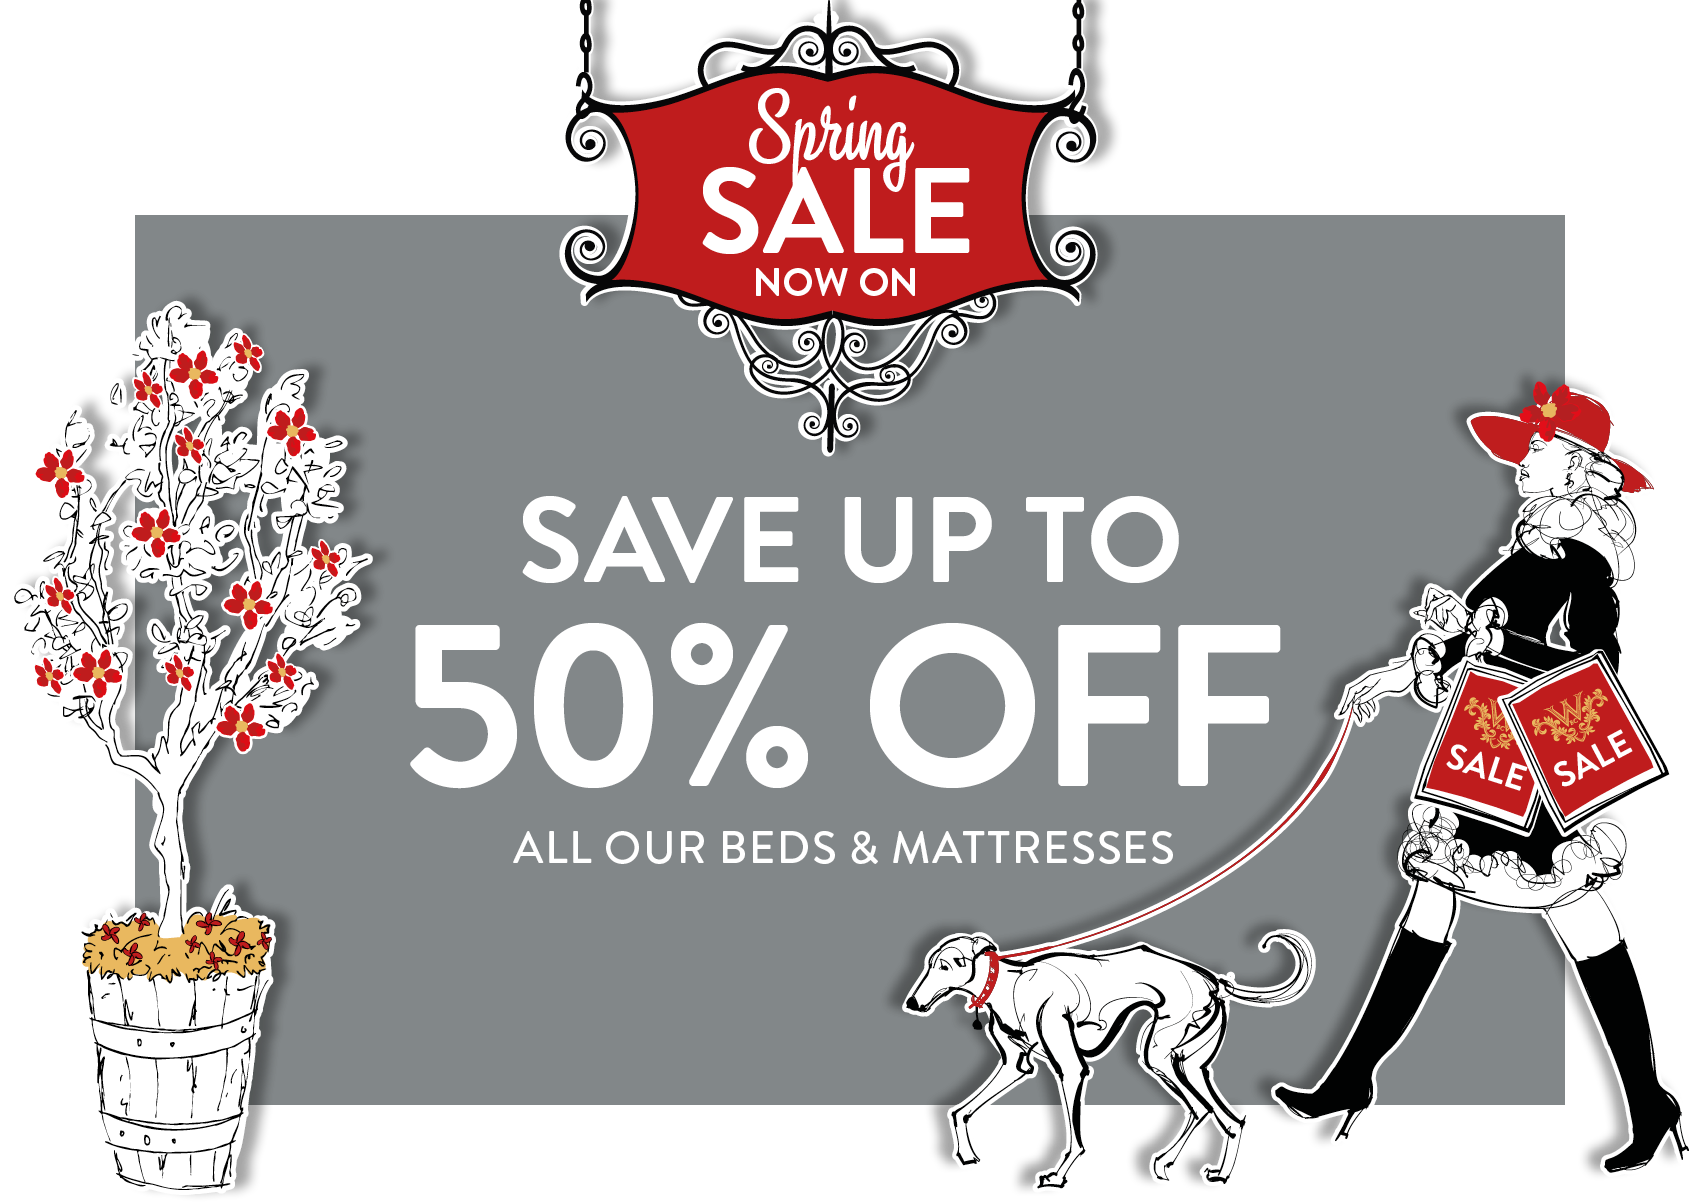 SPRING SALE NOW ON. SAVE UP TO 50% OFF. ALL OUR BEDS & MATTRESSES.